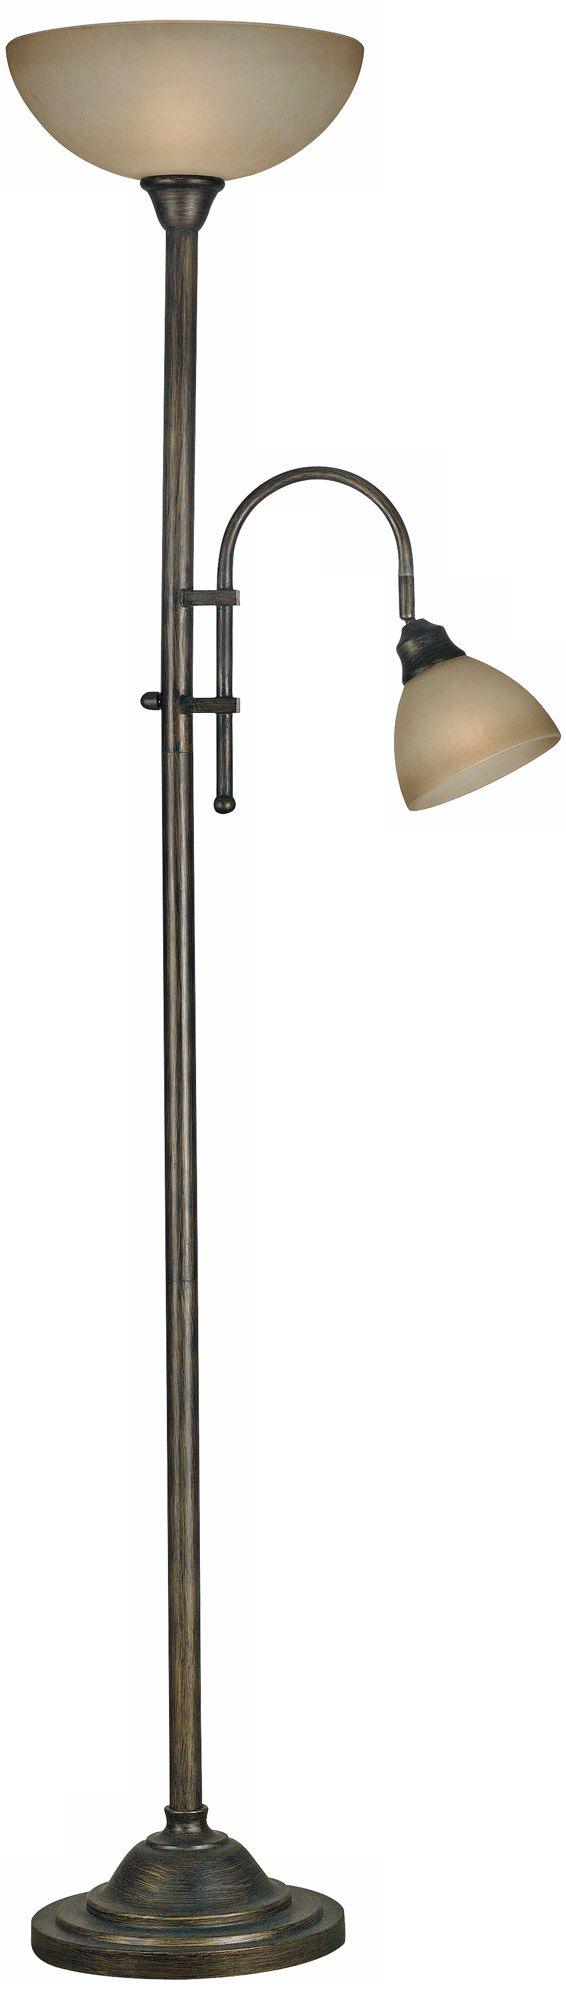 kenroy callahan torchiere floor lamp with side light